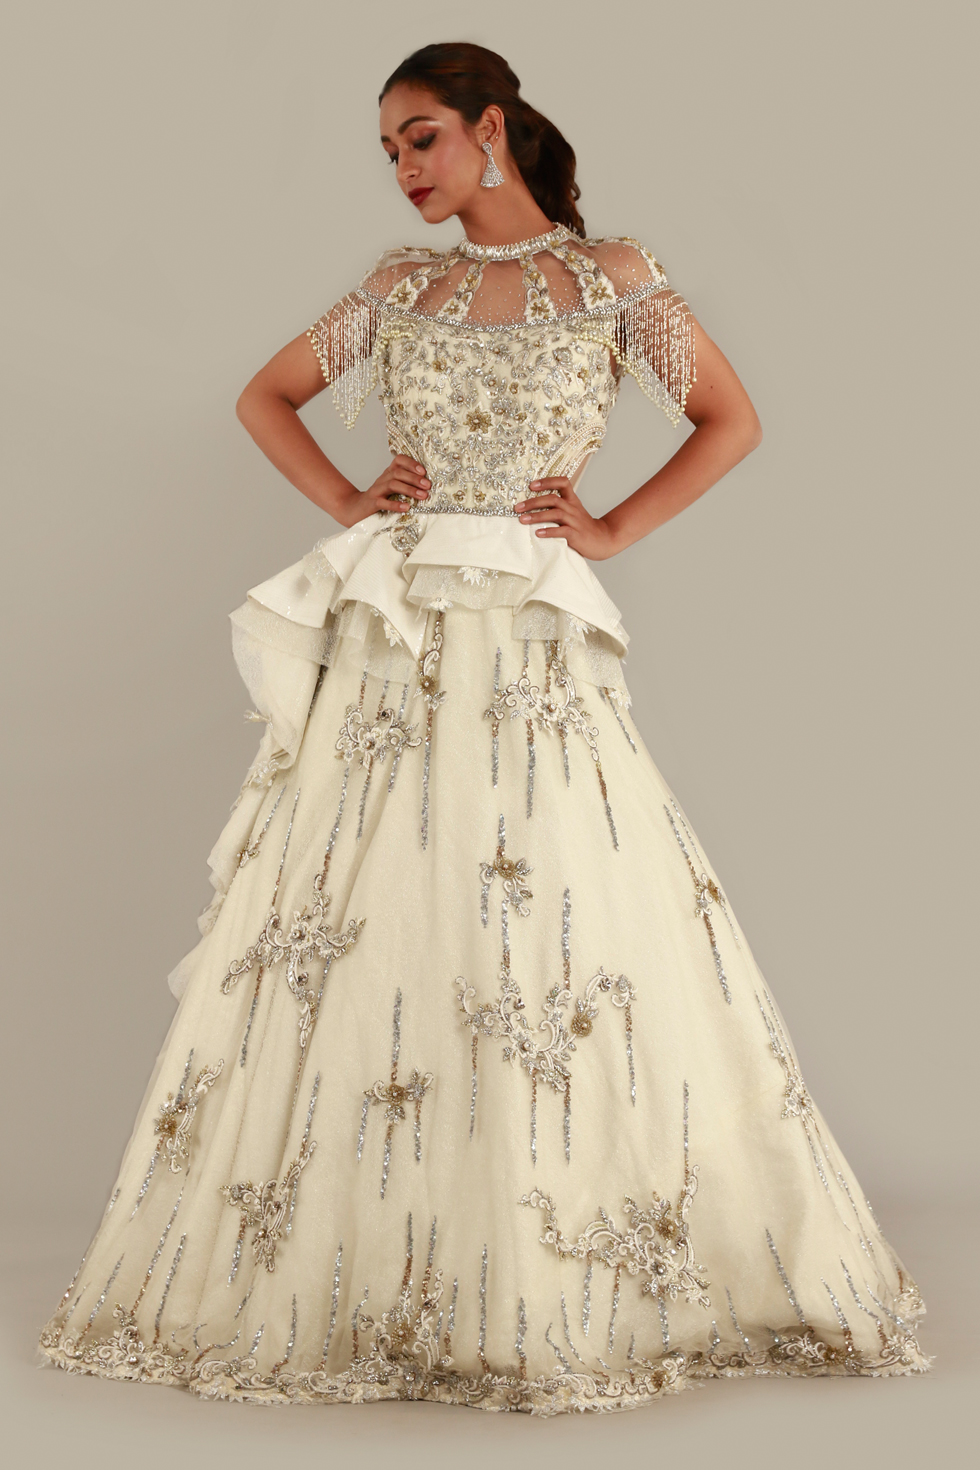 Pearl white gown with peplum waist, gold and silver embroidery, cut out details and tassels on the sleeves